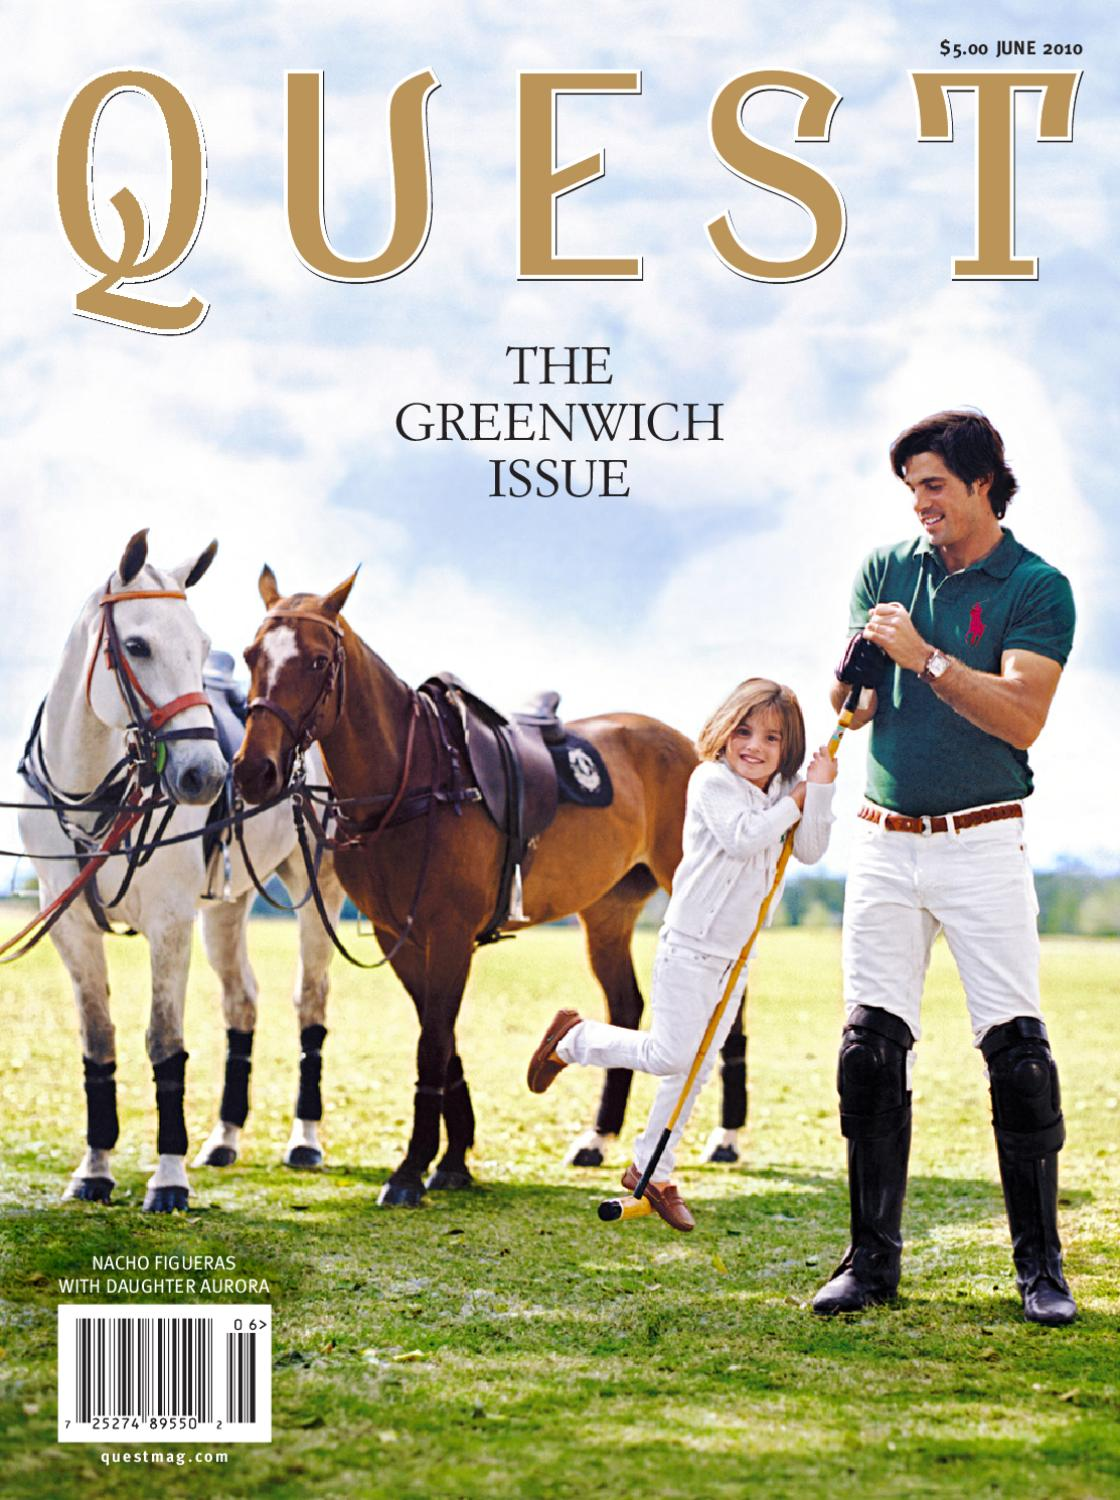 the greenwich issue by quest magazine issuu